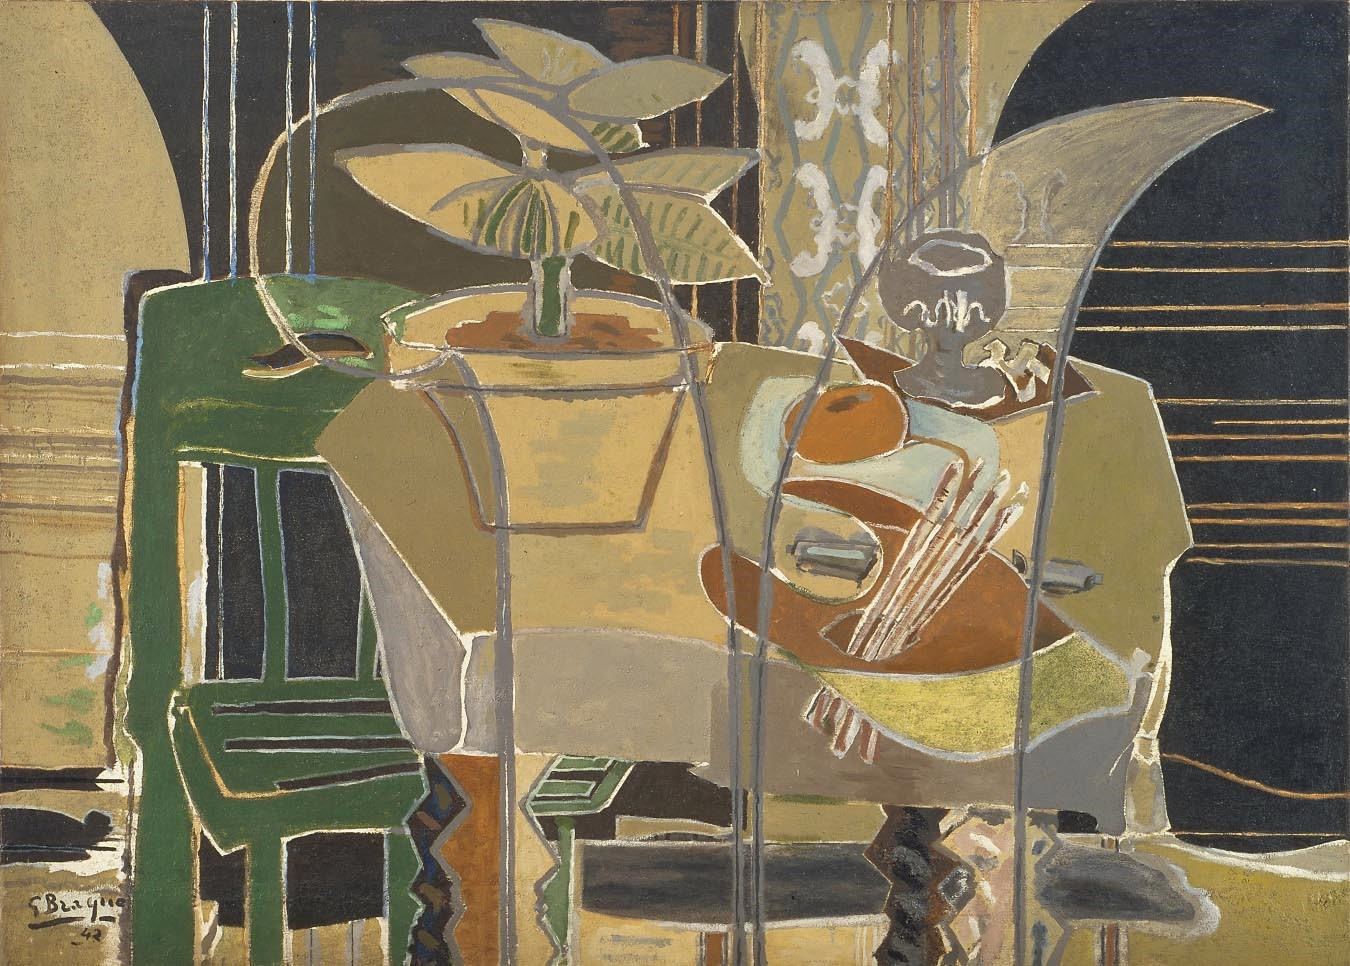 a report on a visit to a exhibition of the works of georges braque Introduced to georges braque by  illustrated with works by pablo picasso picasso's works were also reproduced in  the exhibition pablo picasso,.